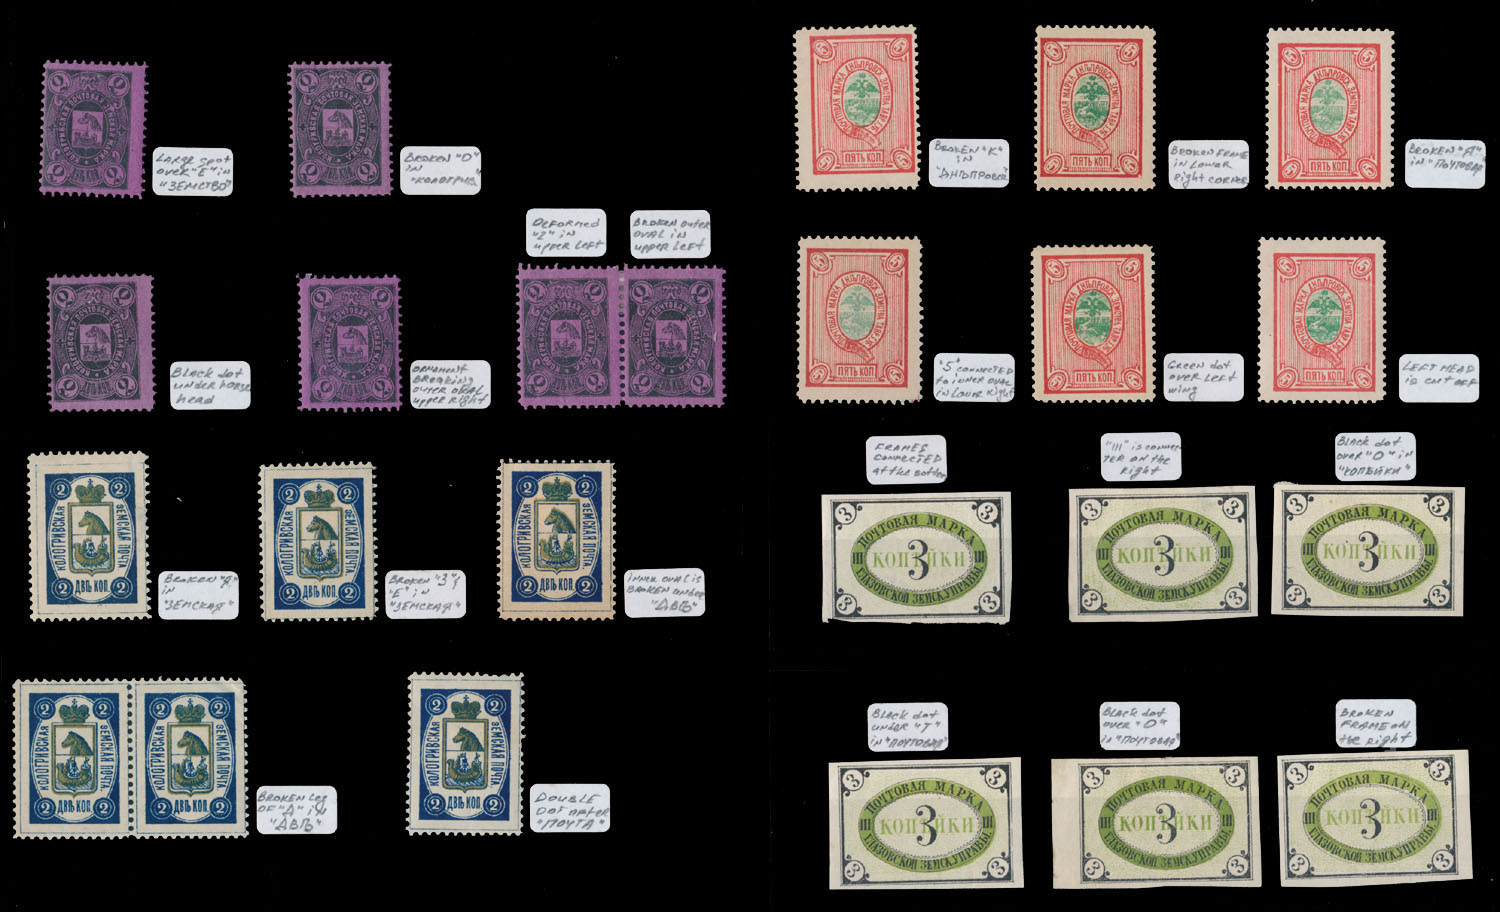 Lot 1301 - russian zemstvo (rural post) locals - collections  -  Raritan Stamps Inc. Live Bidding Auction #85